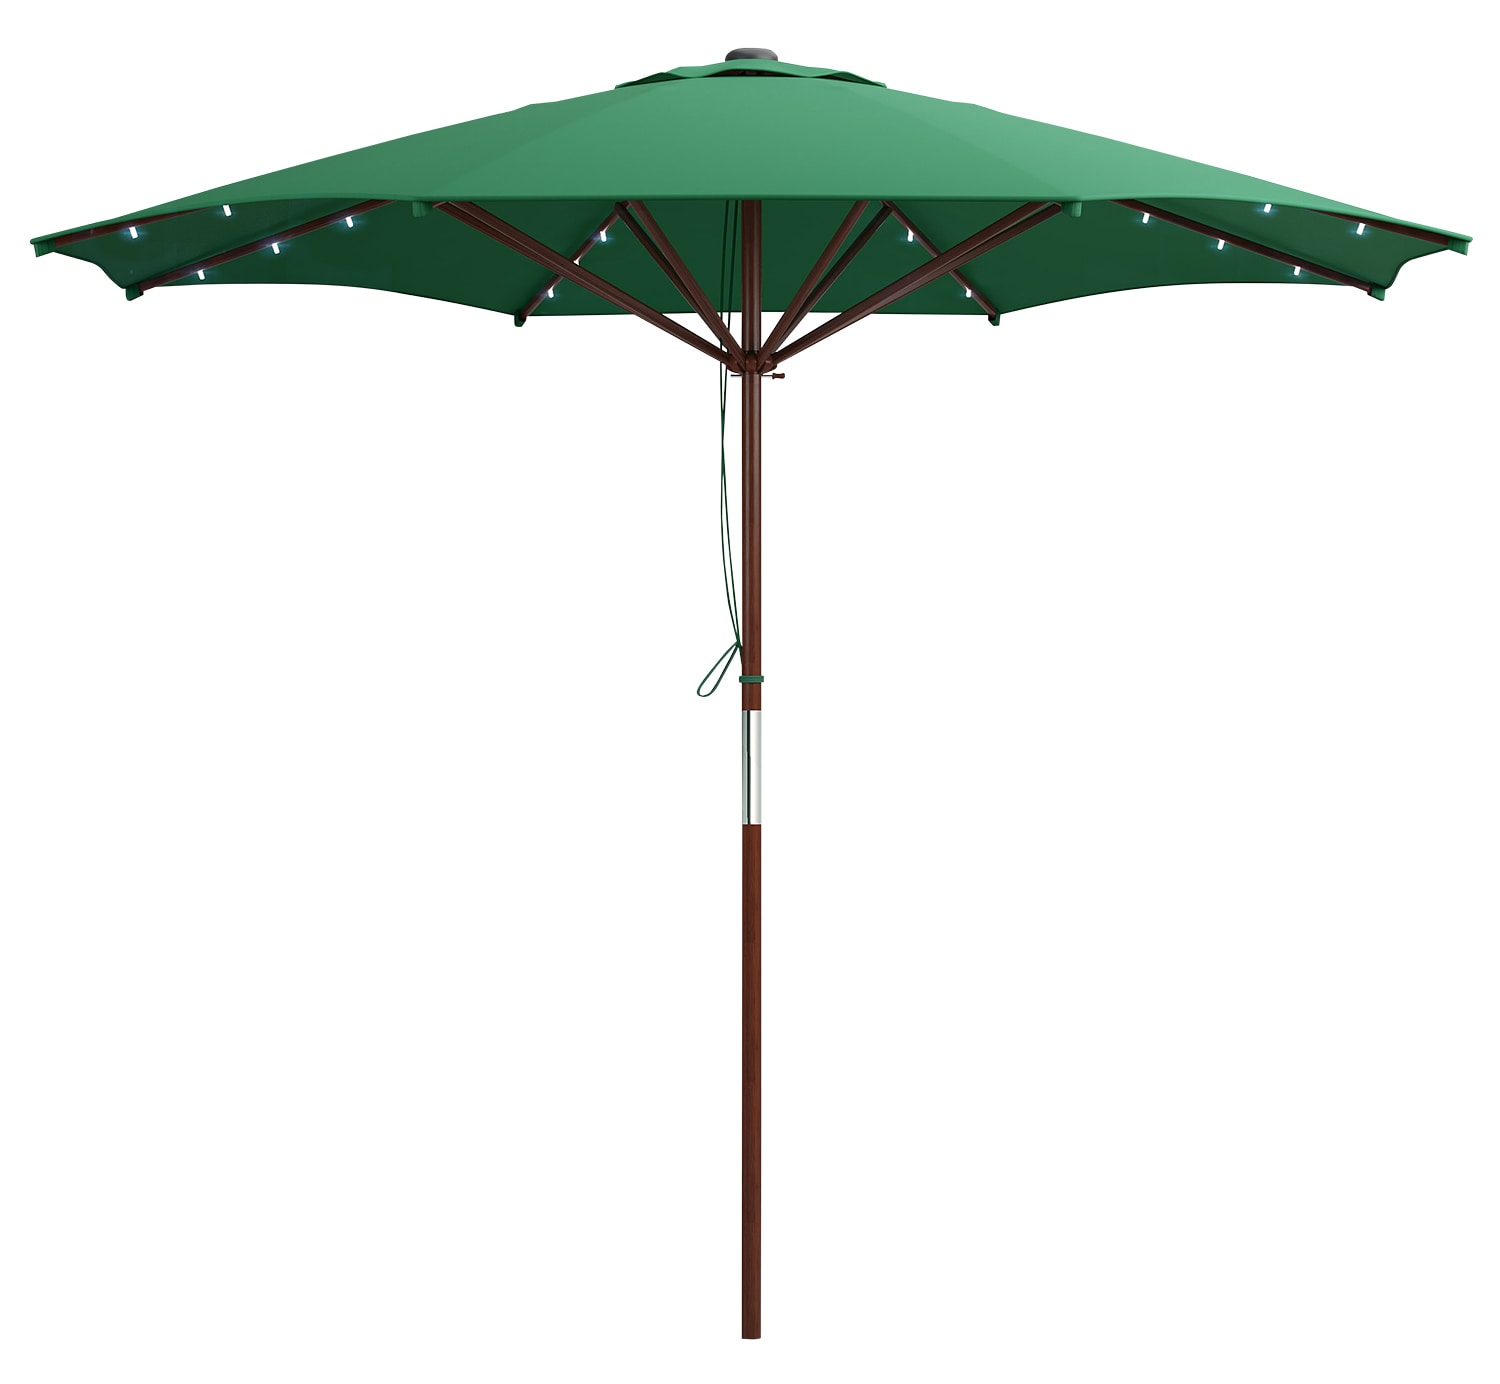 Wood Frame Patio Umbrella With Led Lighting Green The